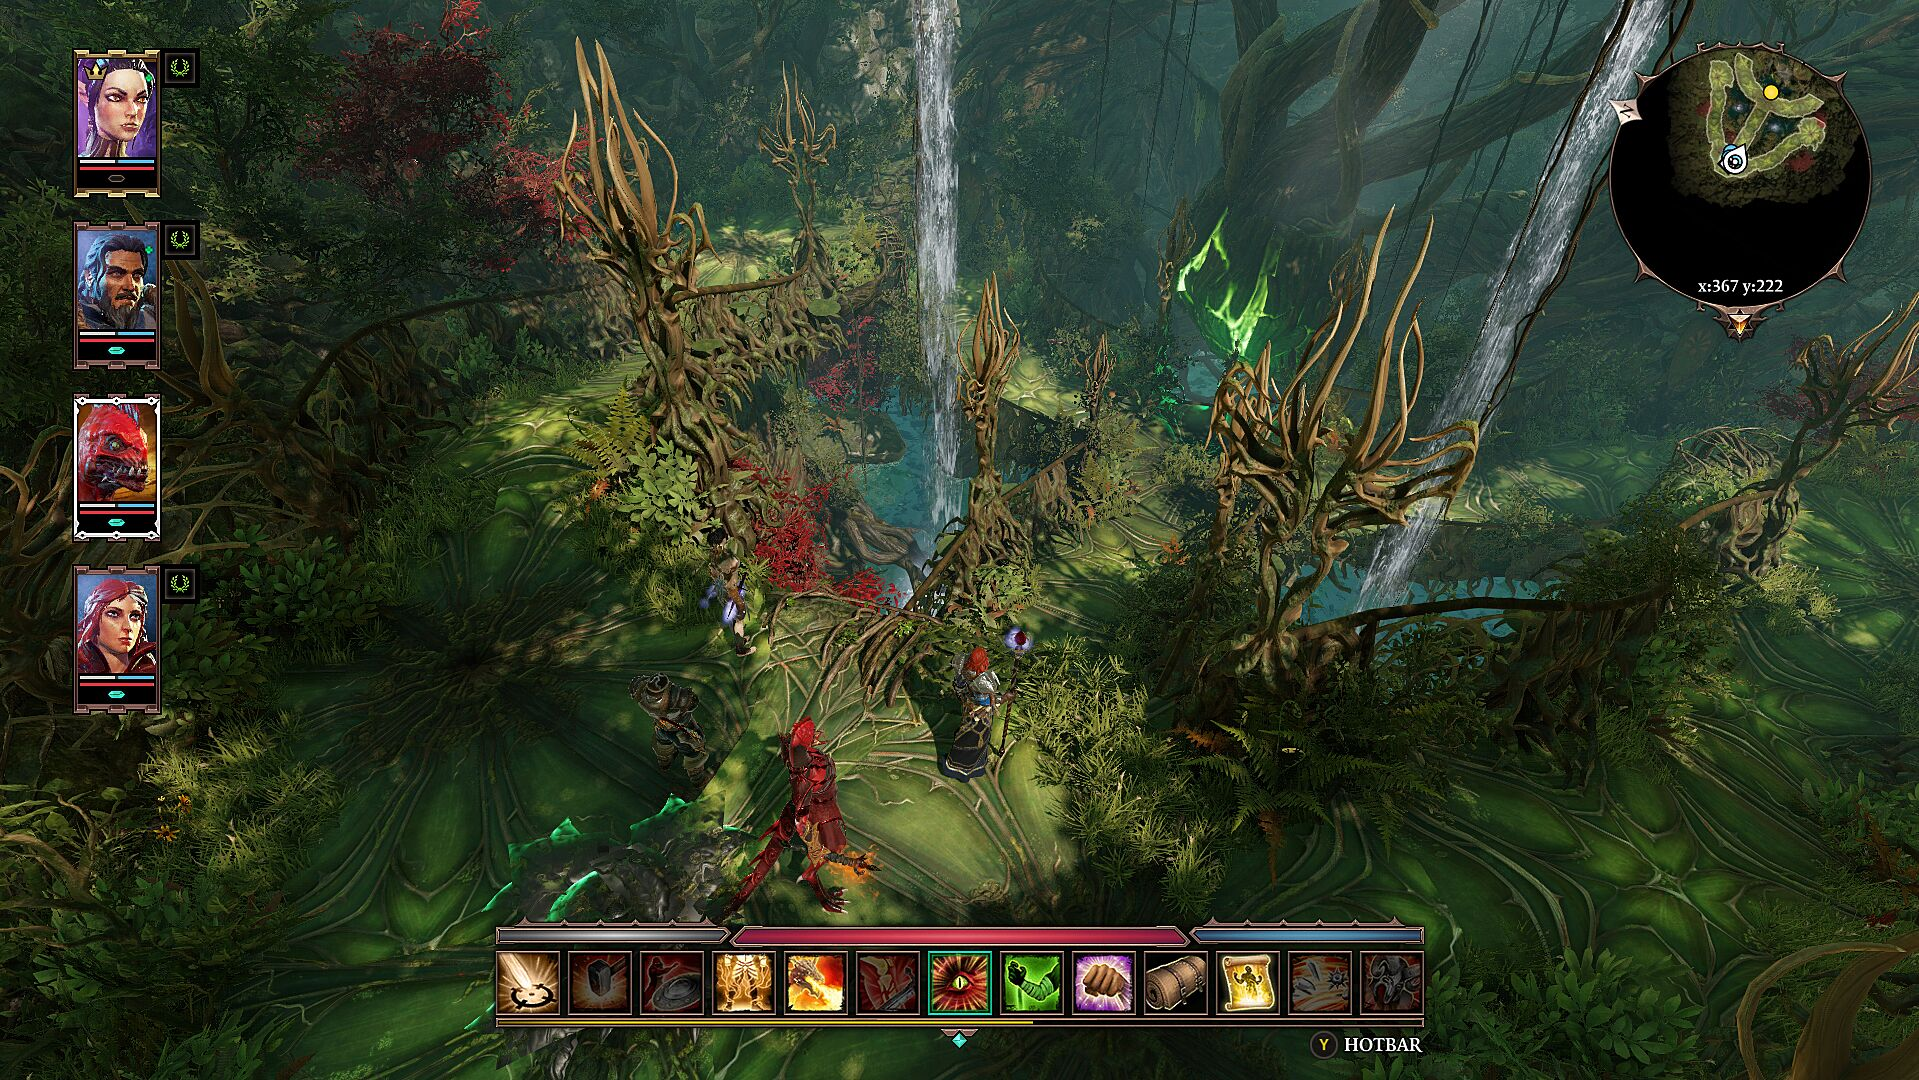 Divinity: Original Sin 2 - Definitive Edition review - Of Gods and men